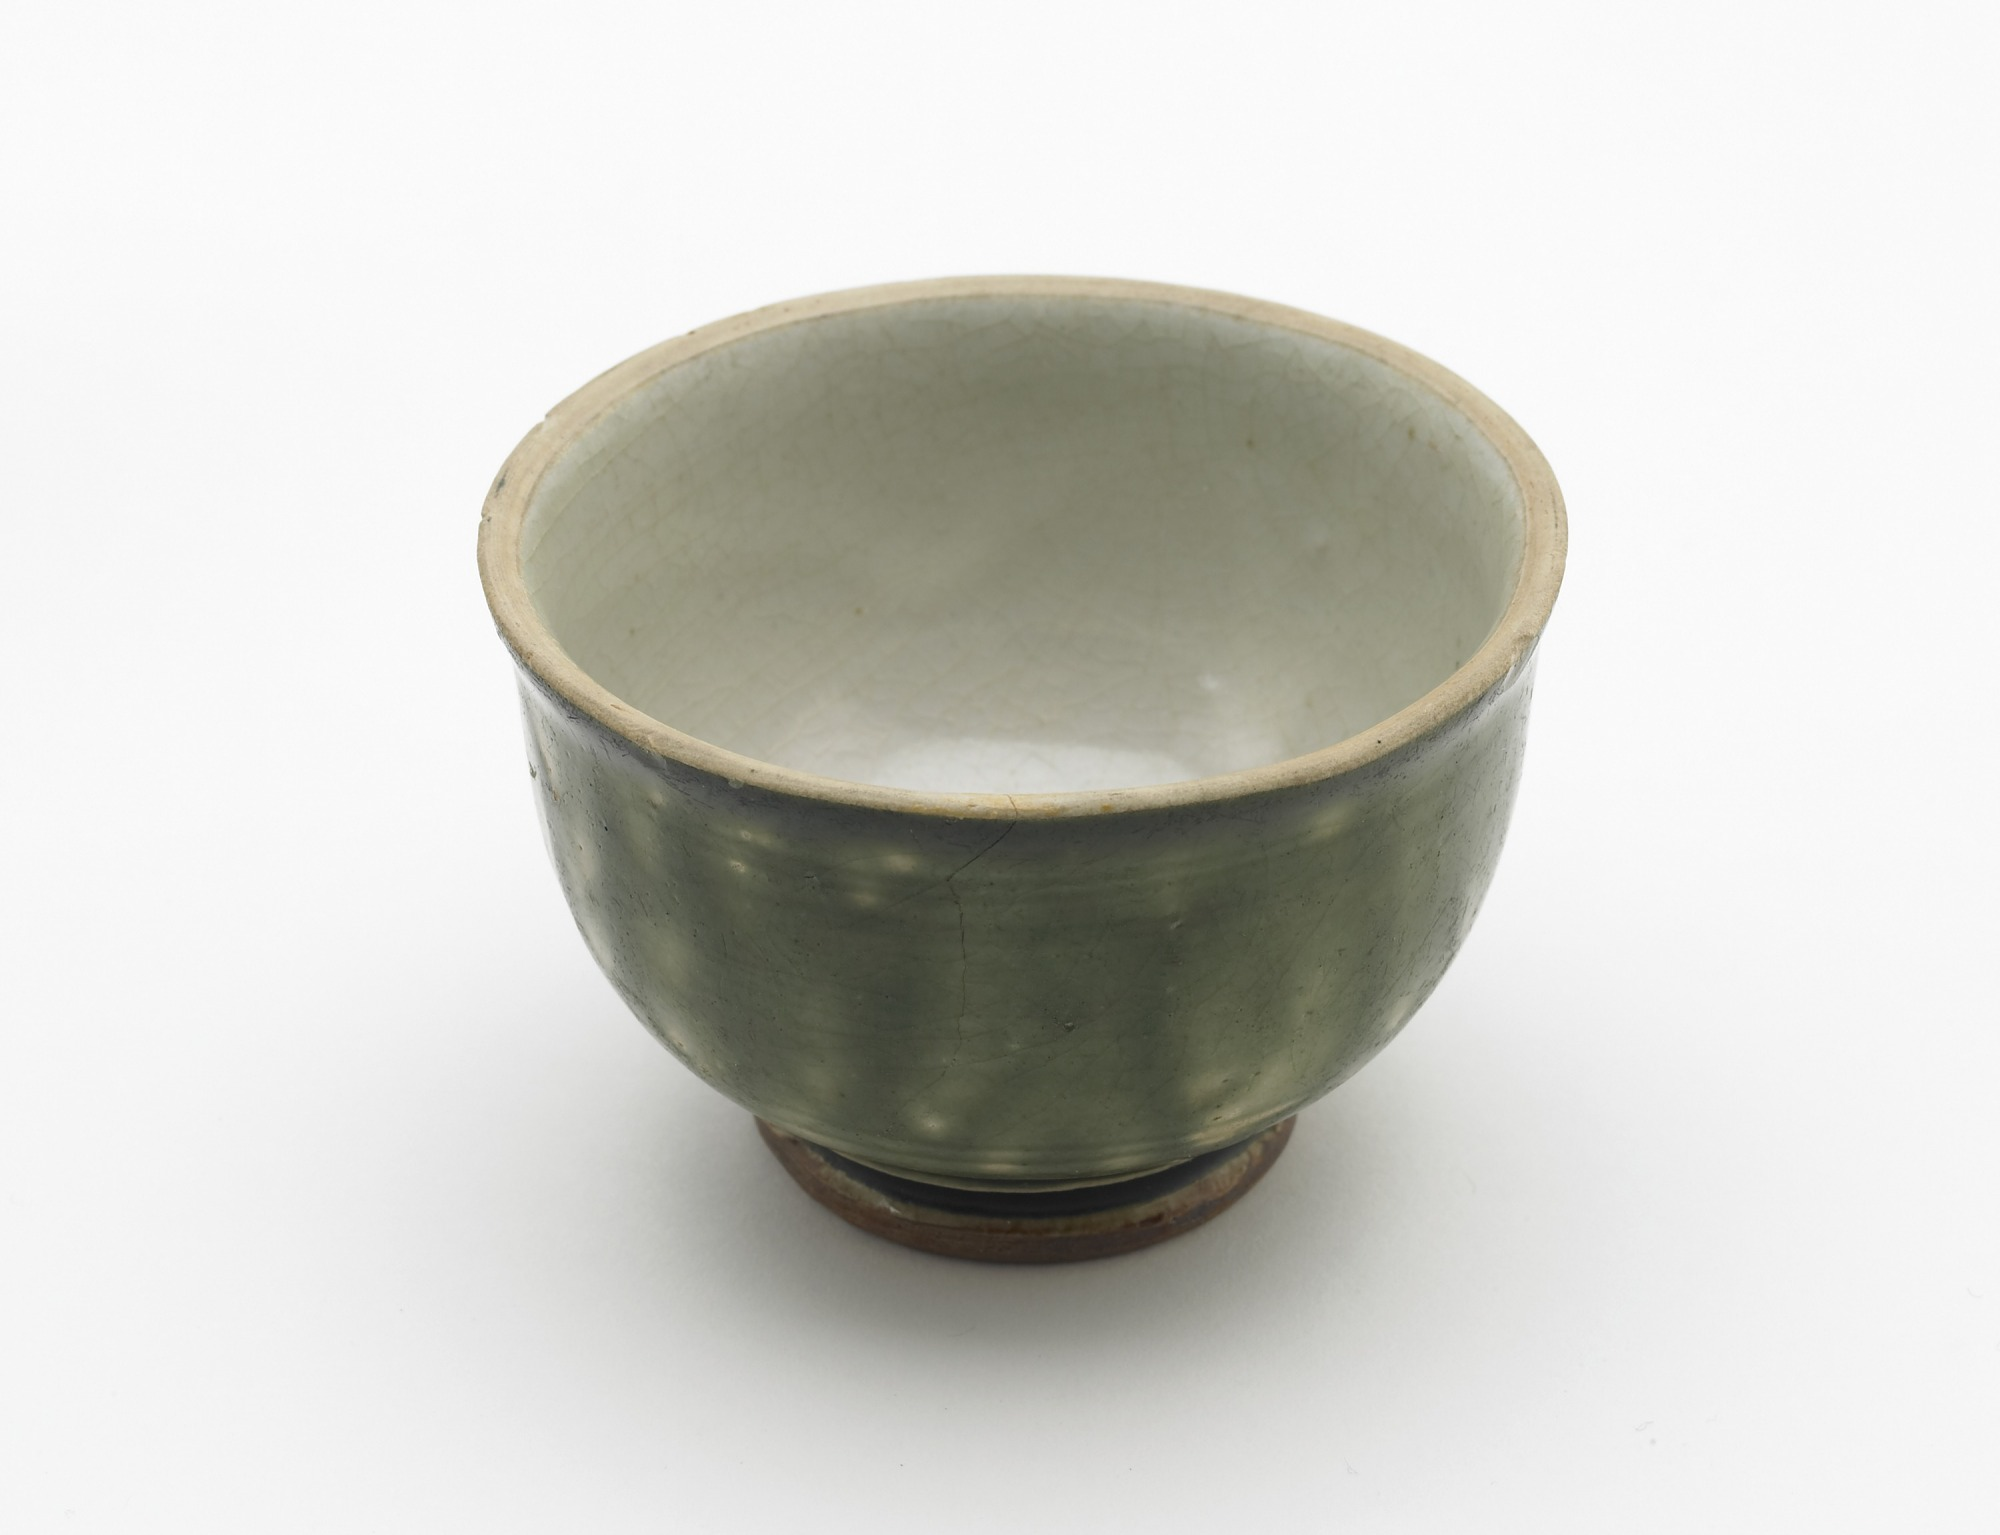 3/4 top view: Cup